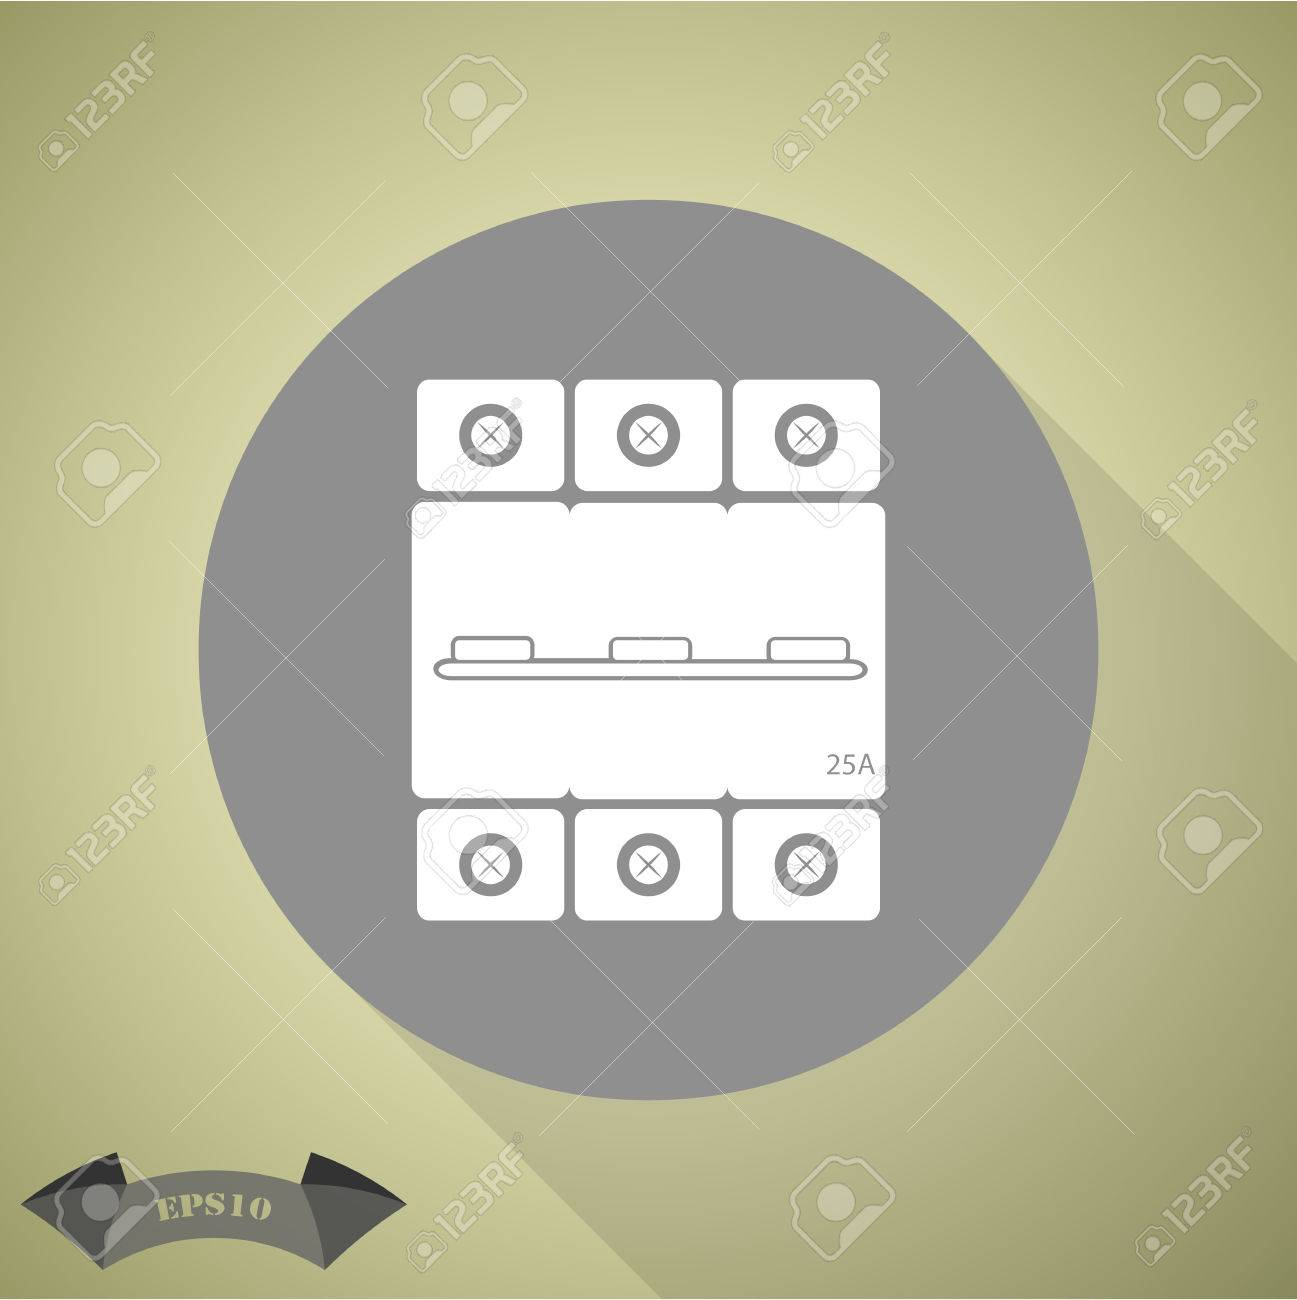 Three Phase Machine 25 Amps Icon Royalty Free Cliparts Vectors And